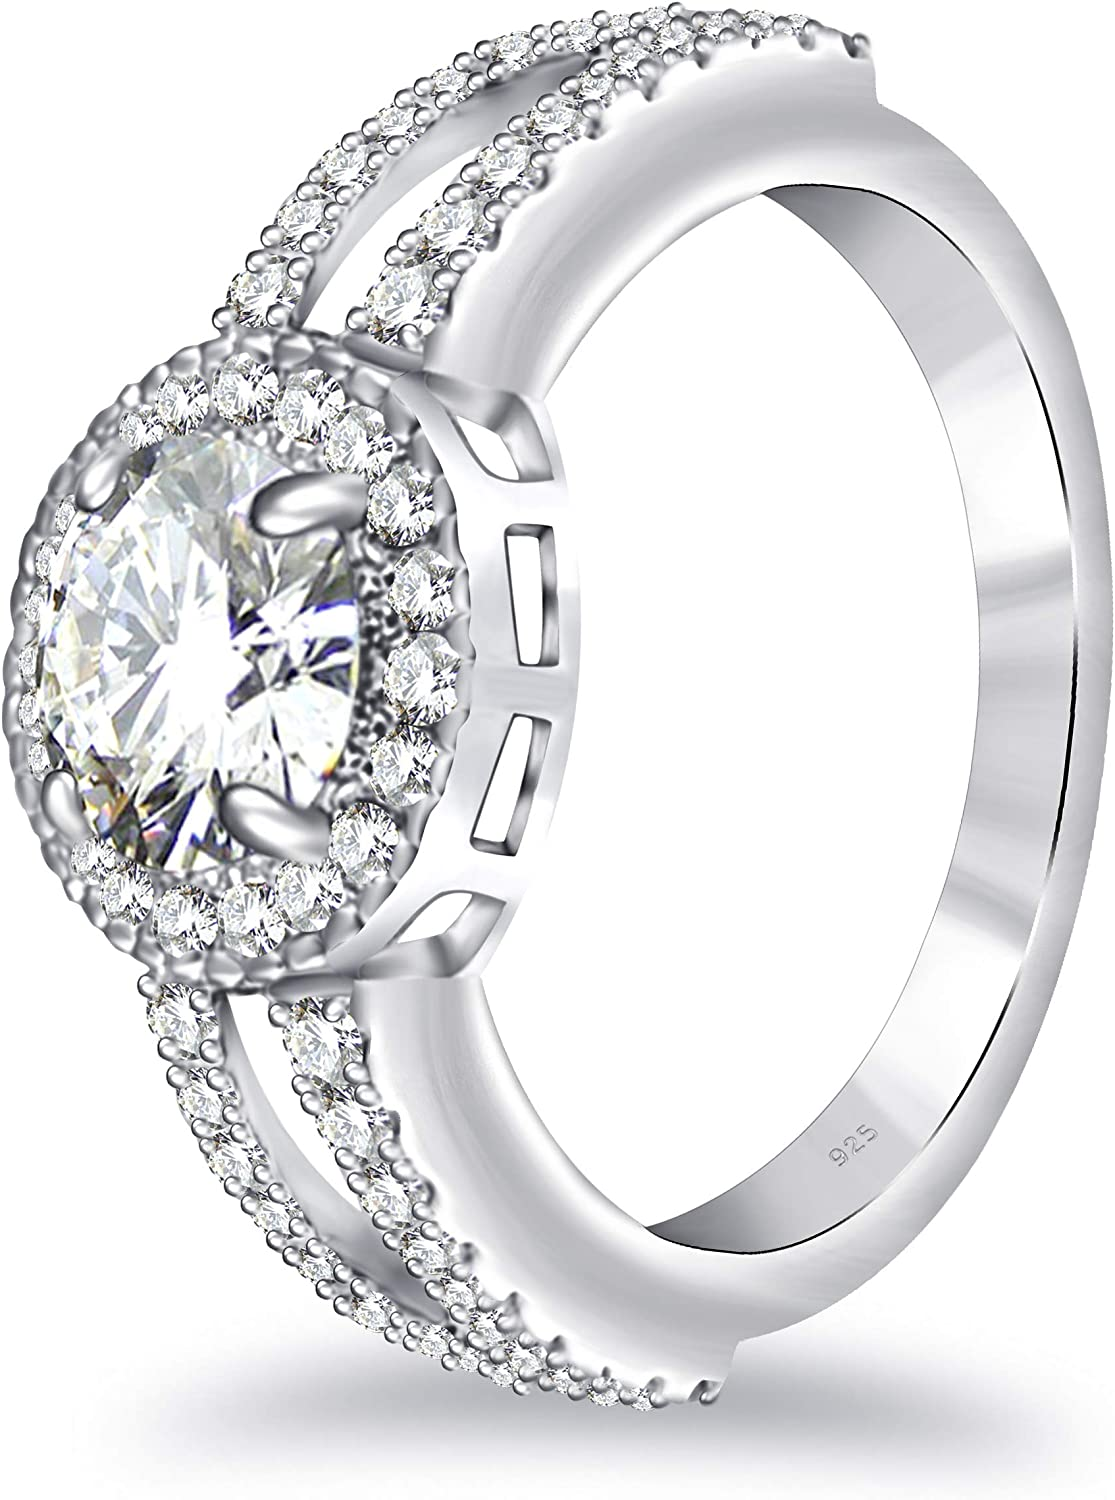 2 Ct Pink Round Moissanite Halo Engagement Wedding Halo Ring 925 Sterling Silver